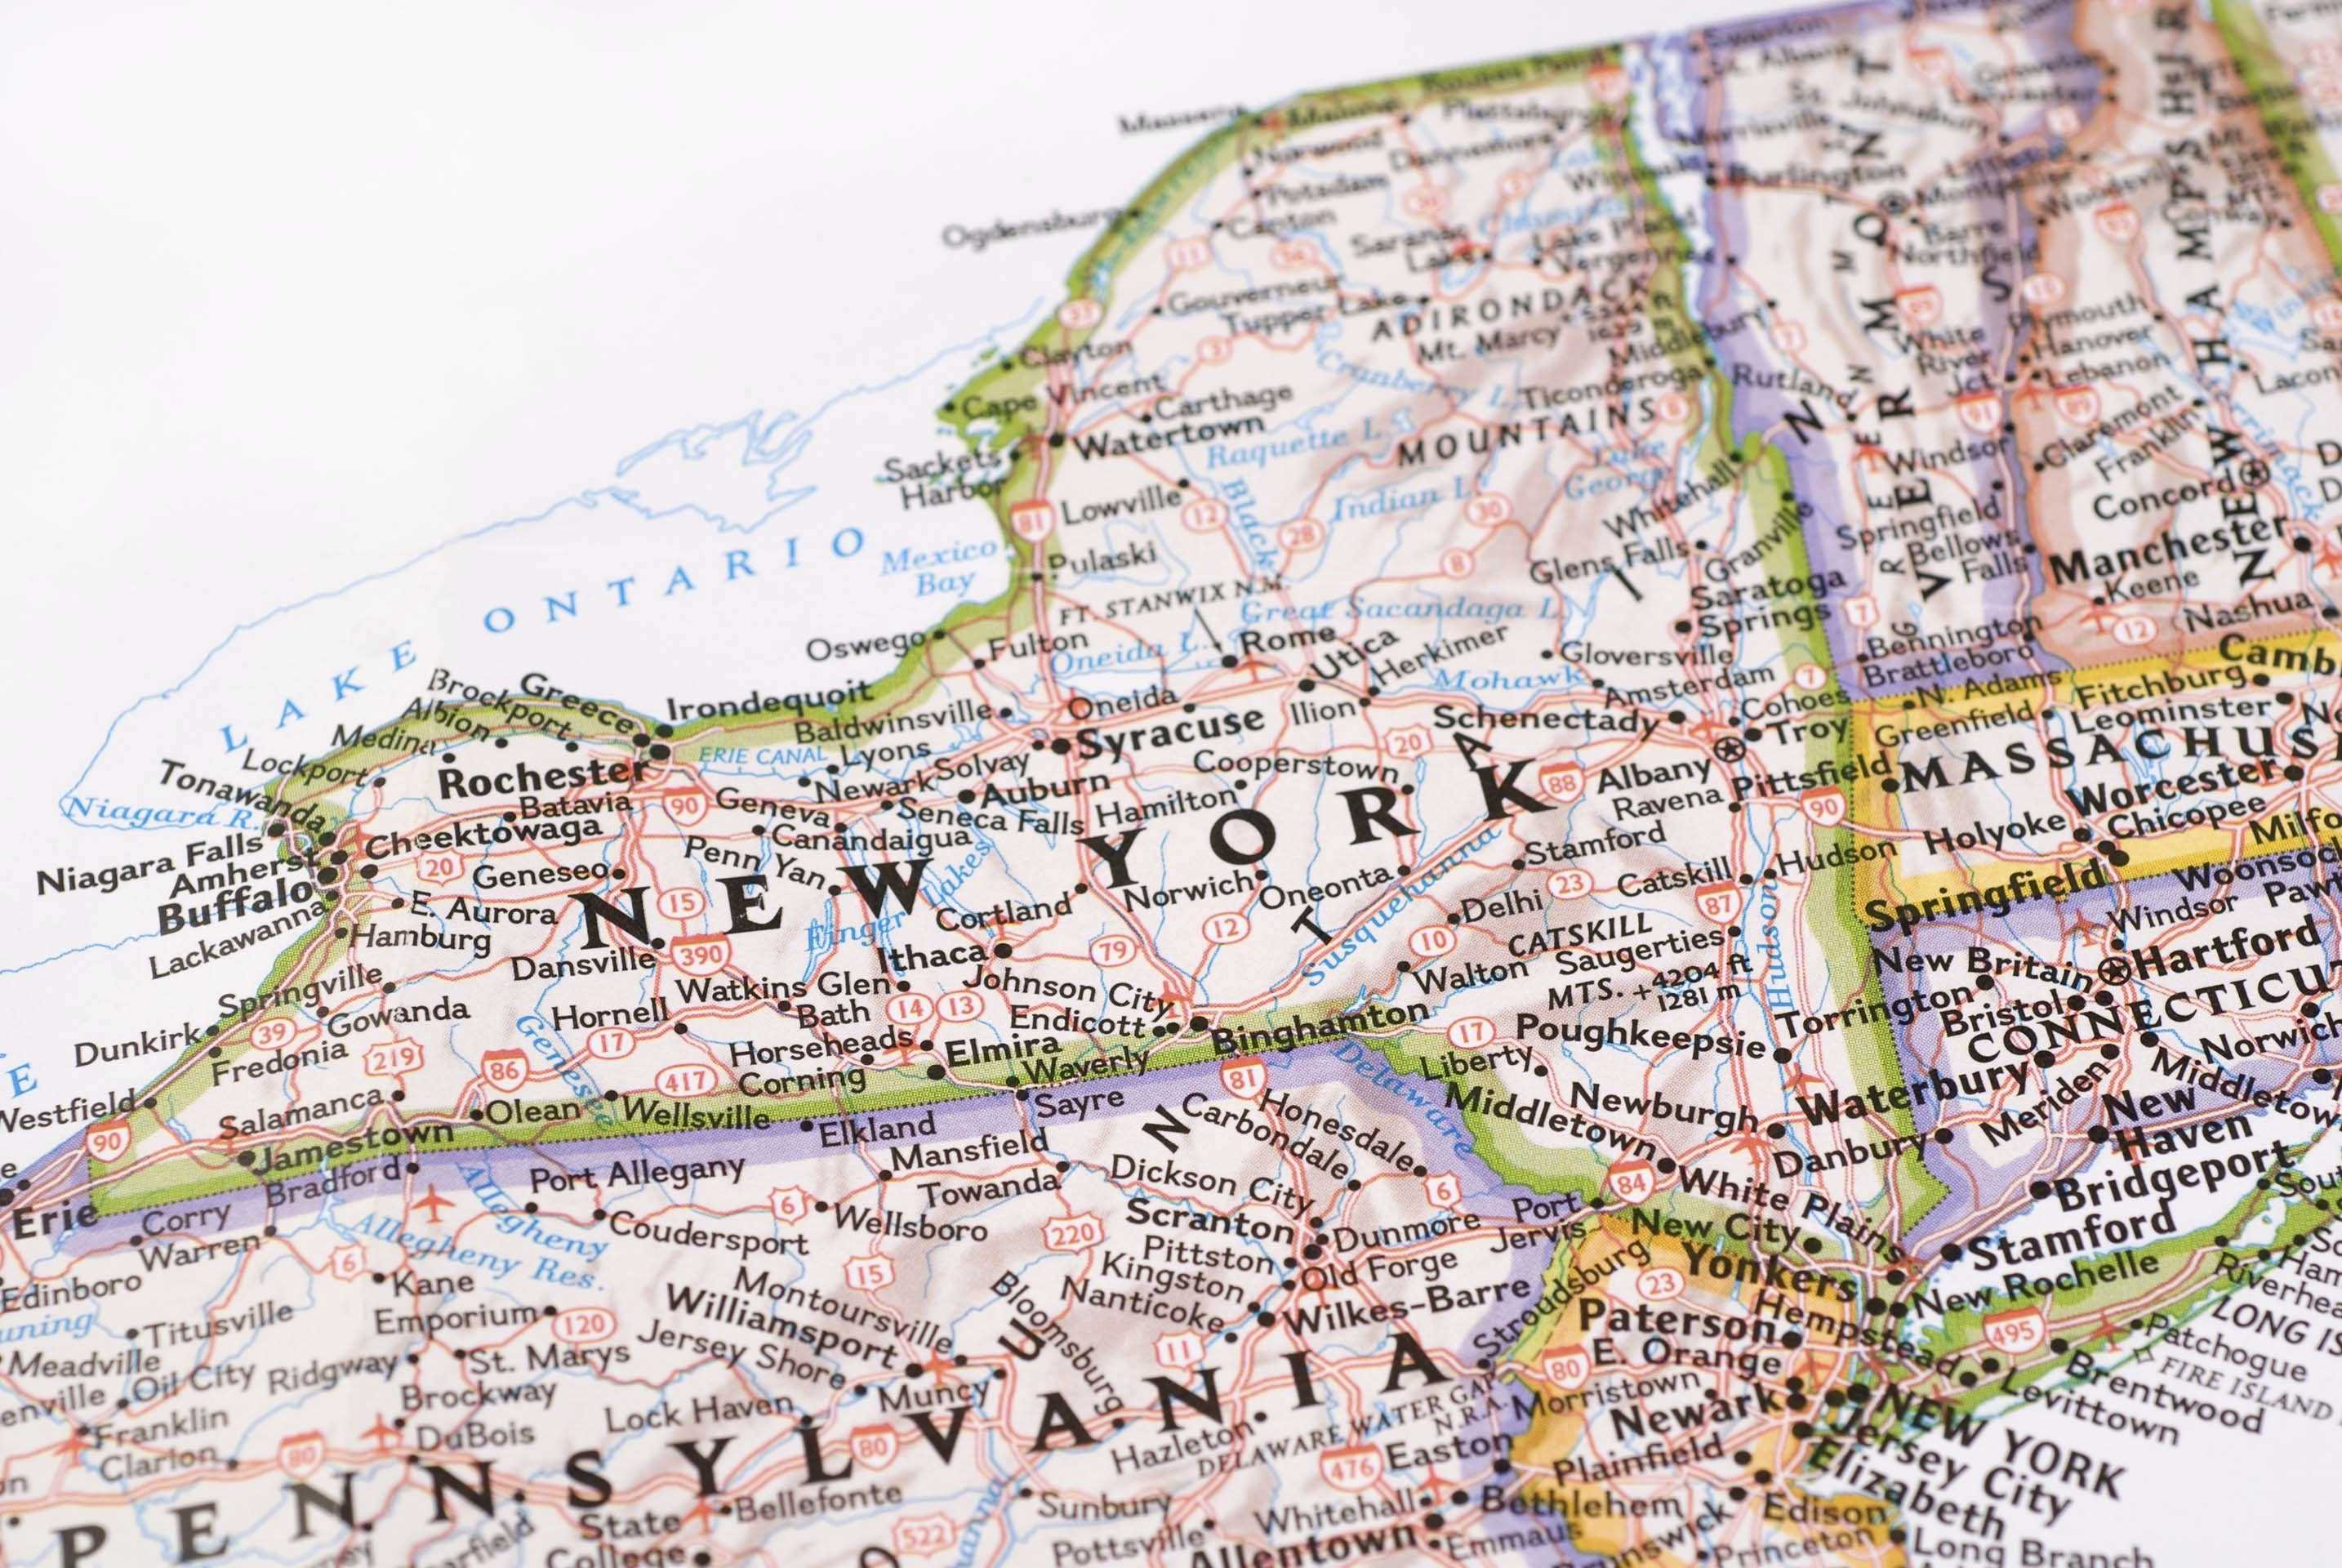 New York law allows insurers to issue policies without submitting rate filings